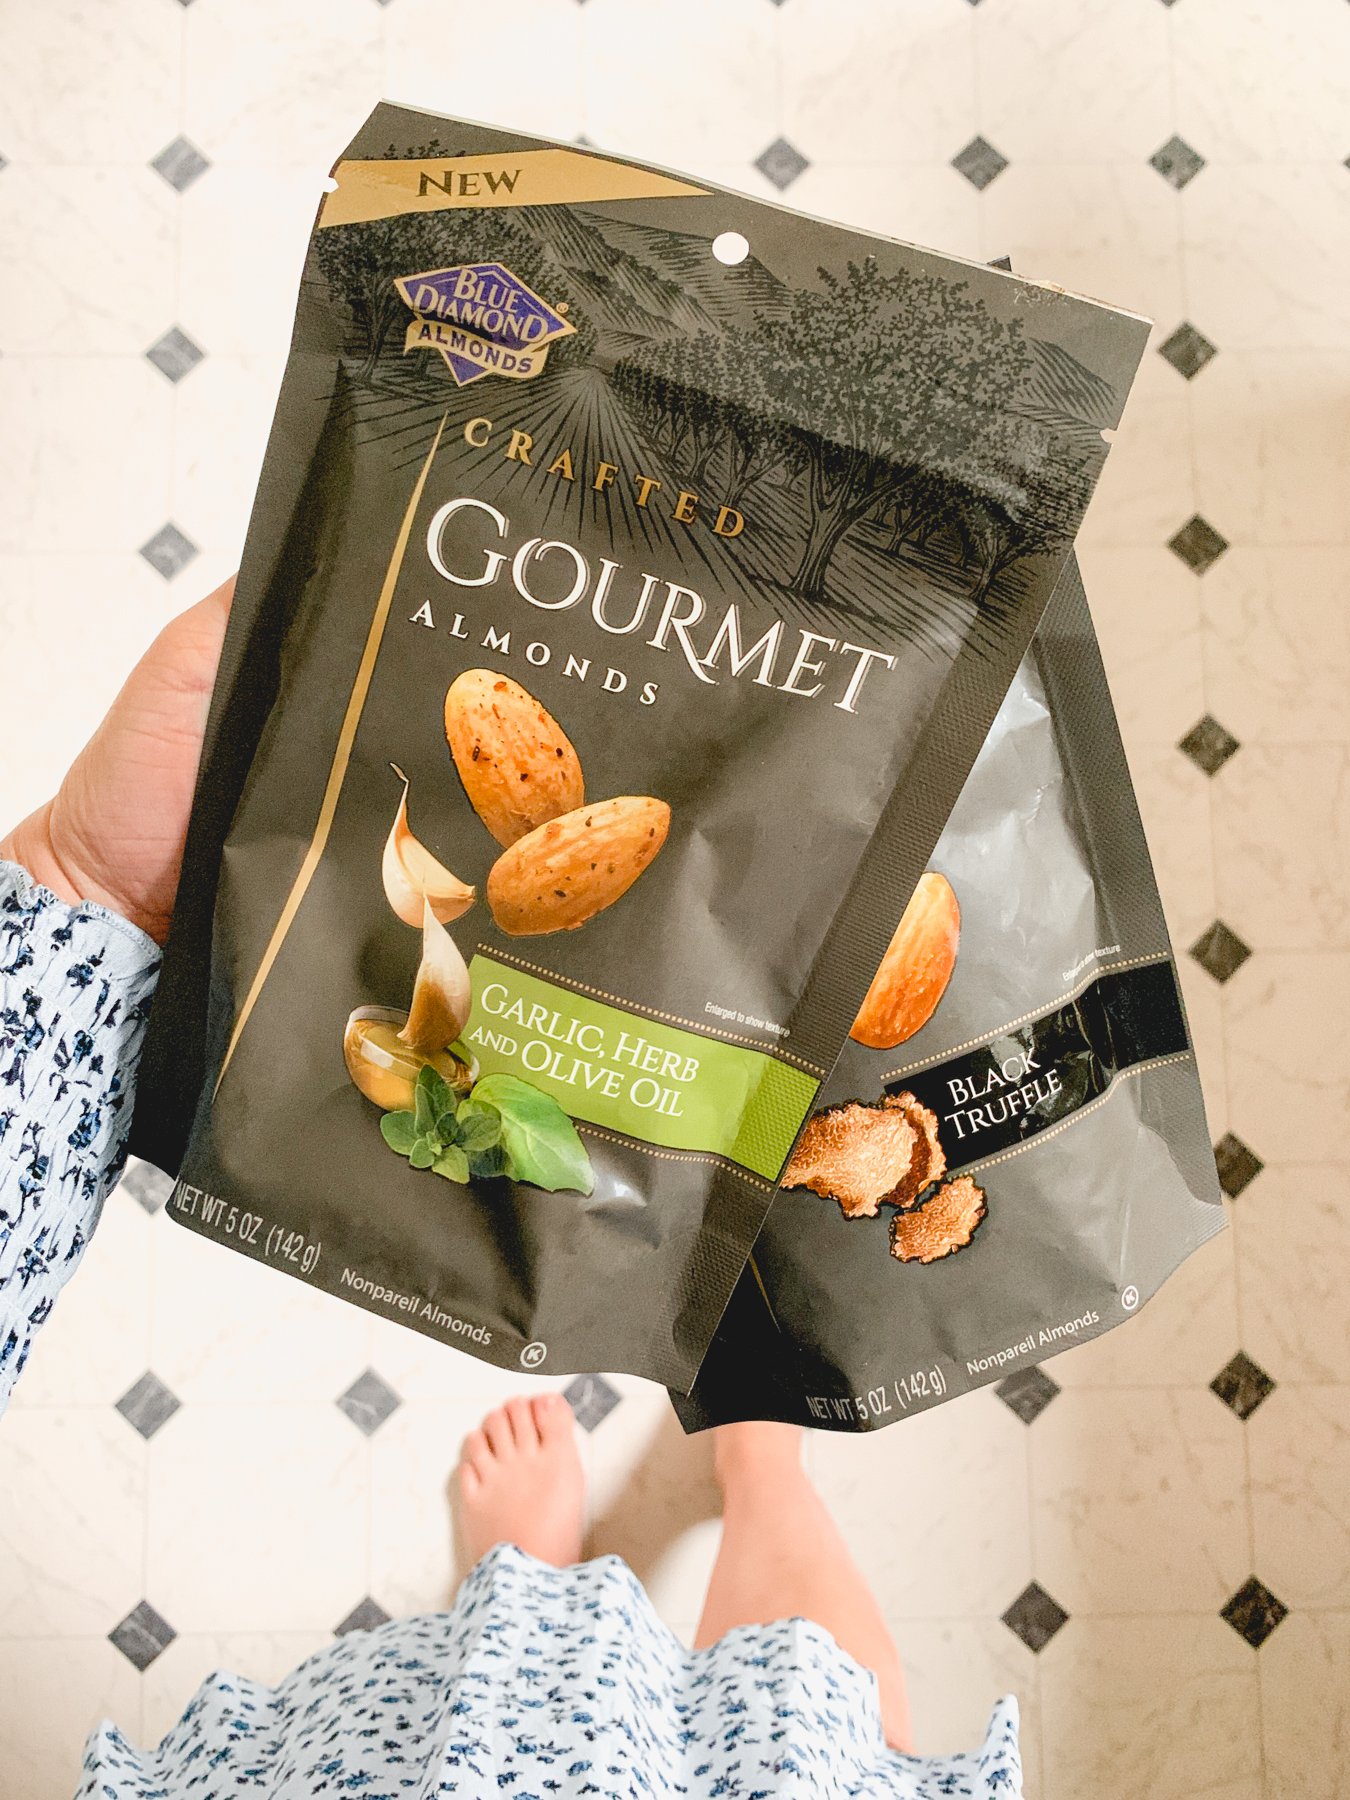 holding two bags of blue diamond gourmet almonds